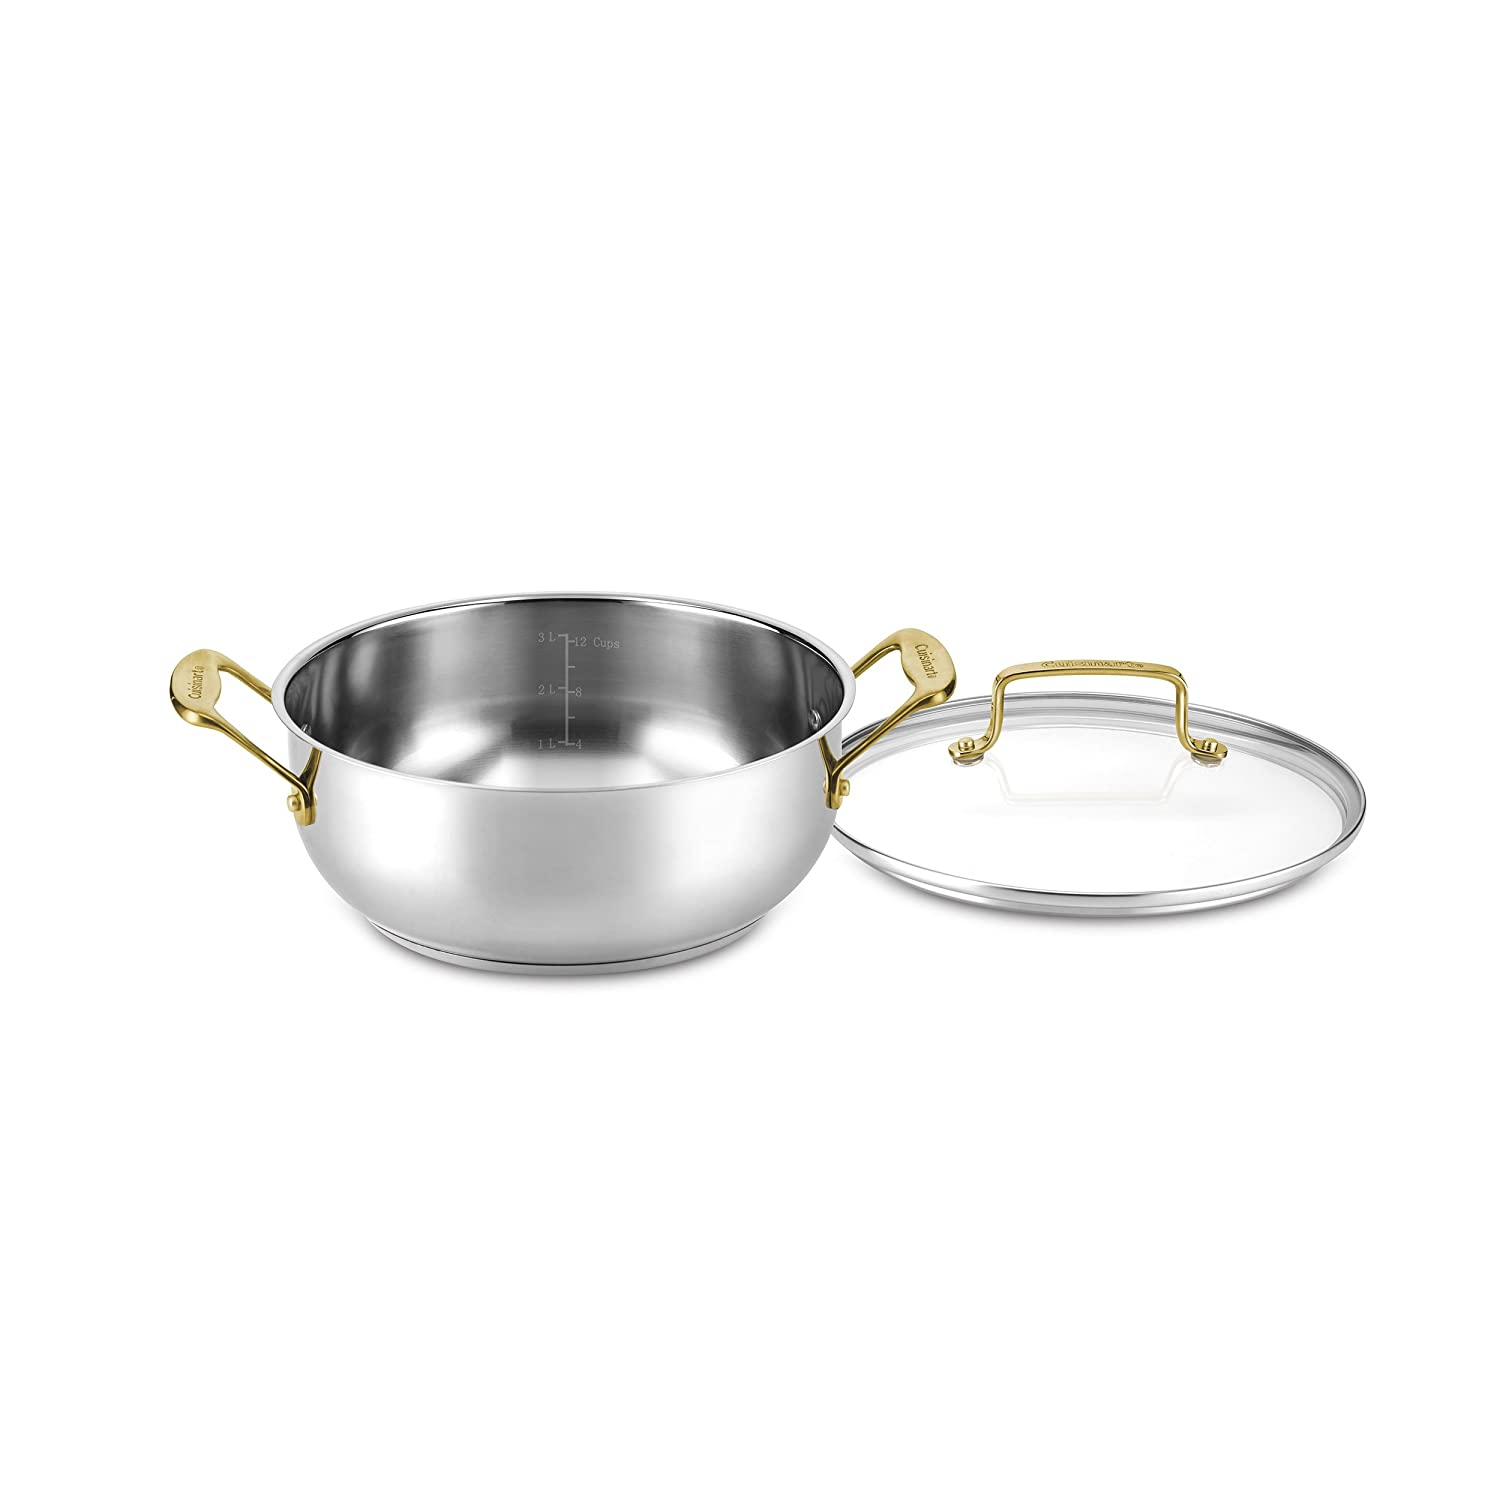 Cuisinart C7M44-24GD Mineral Collection Dutch Oven with cover Medium Stainless Steel